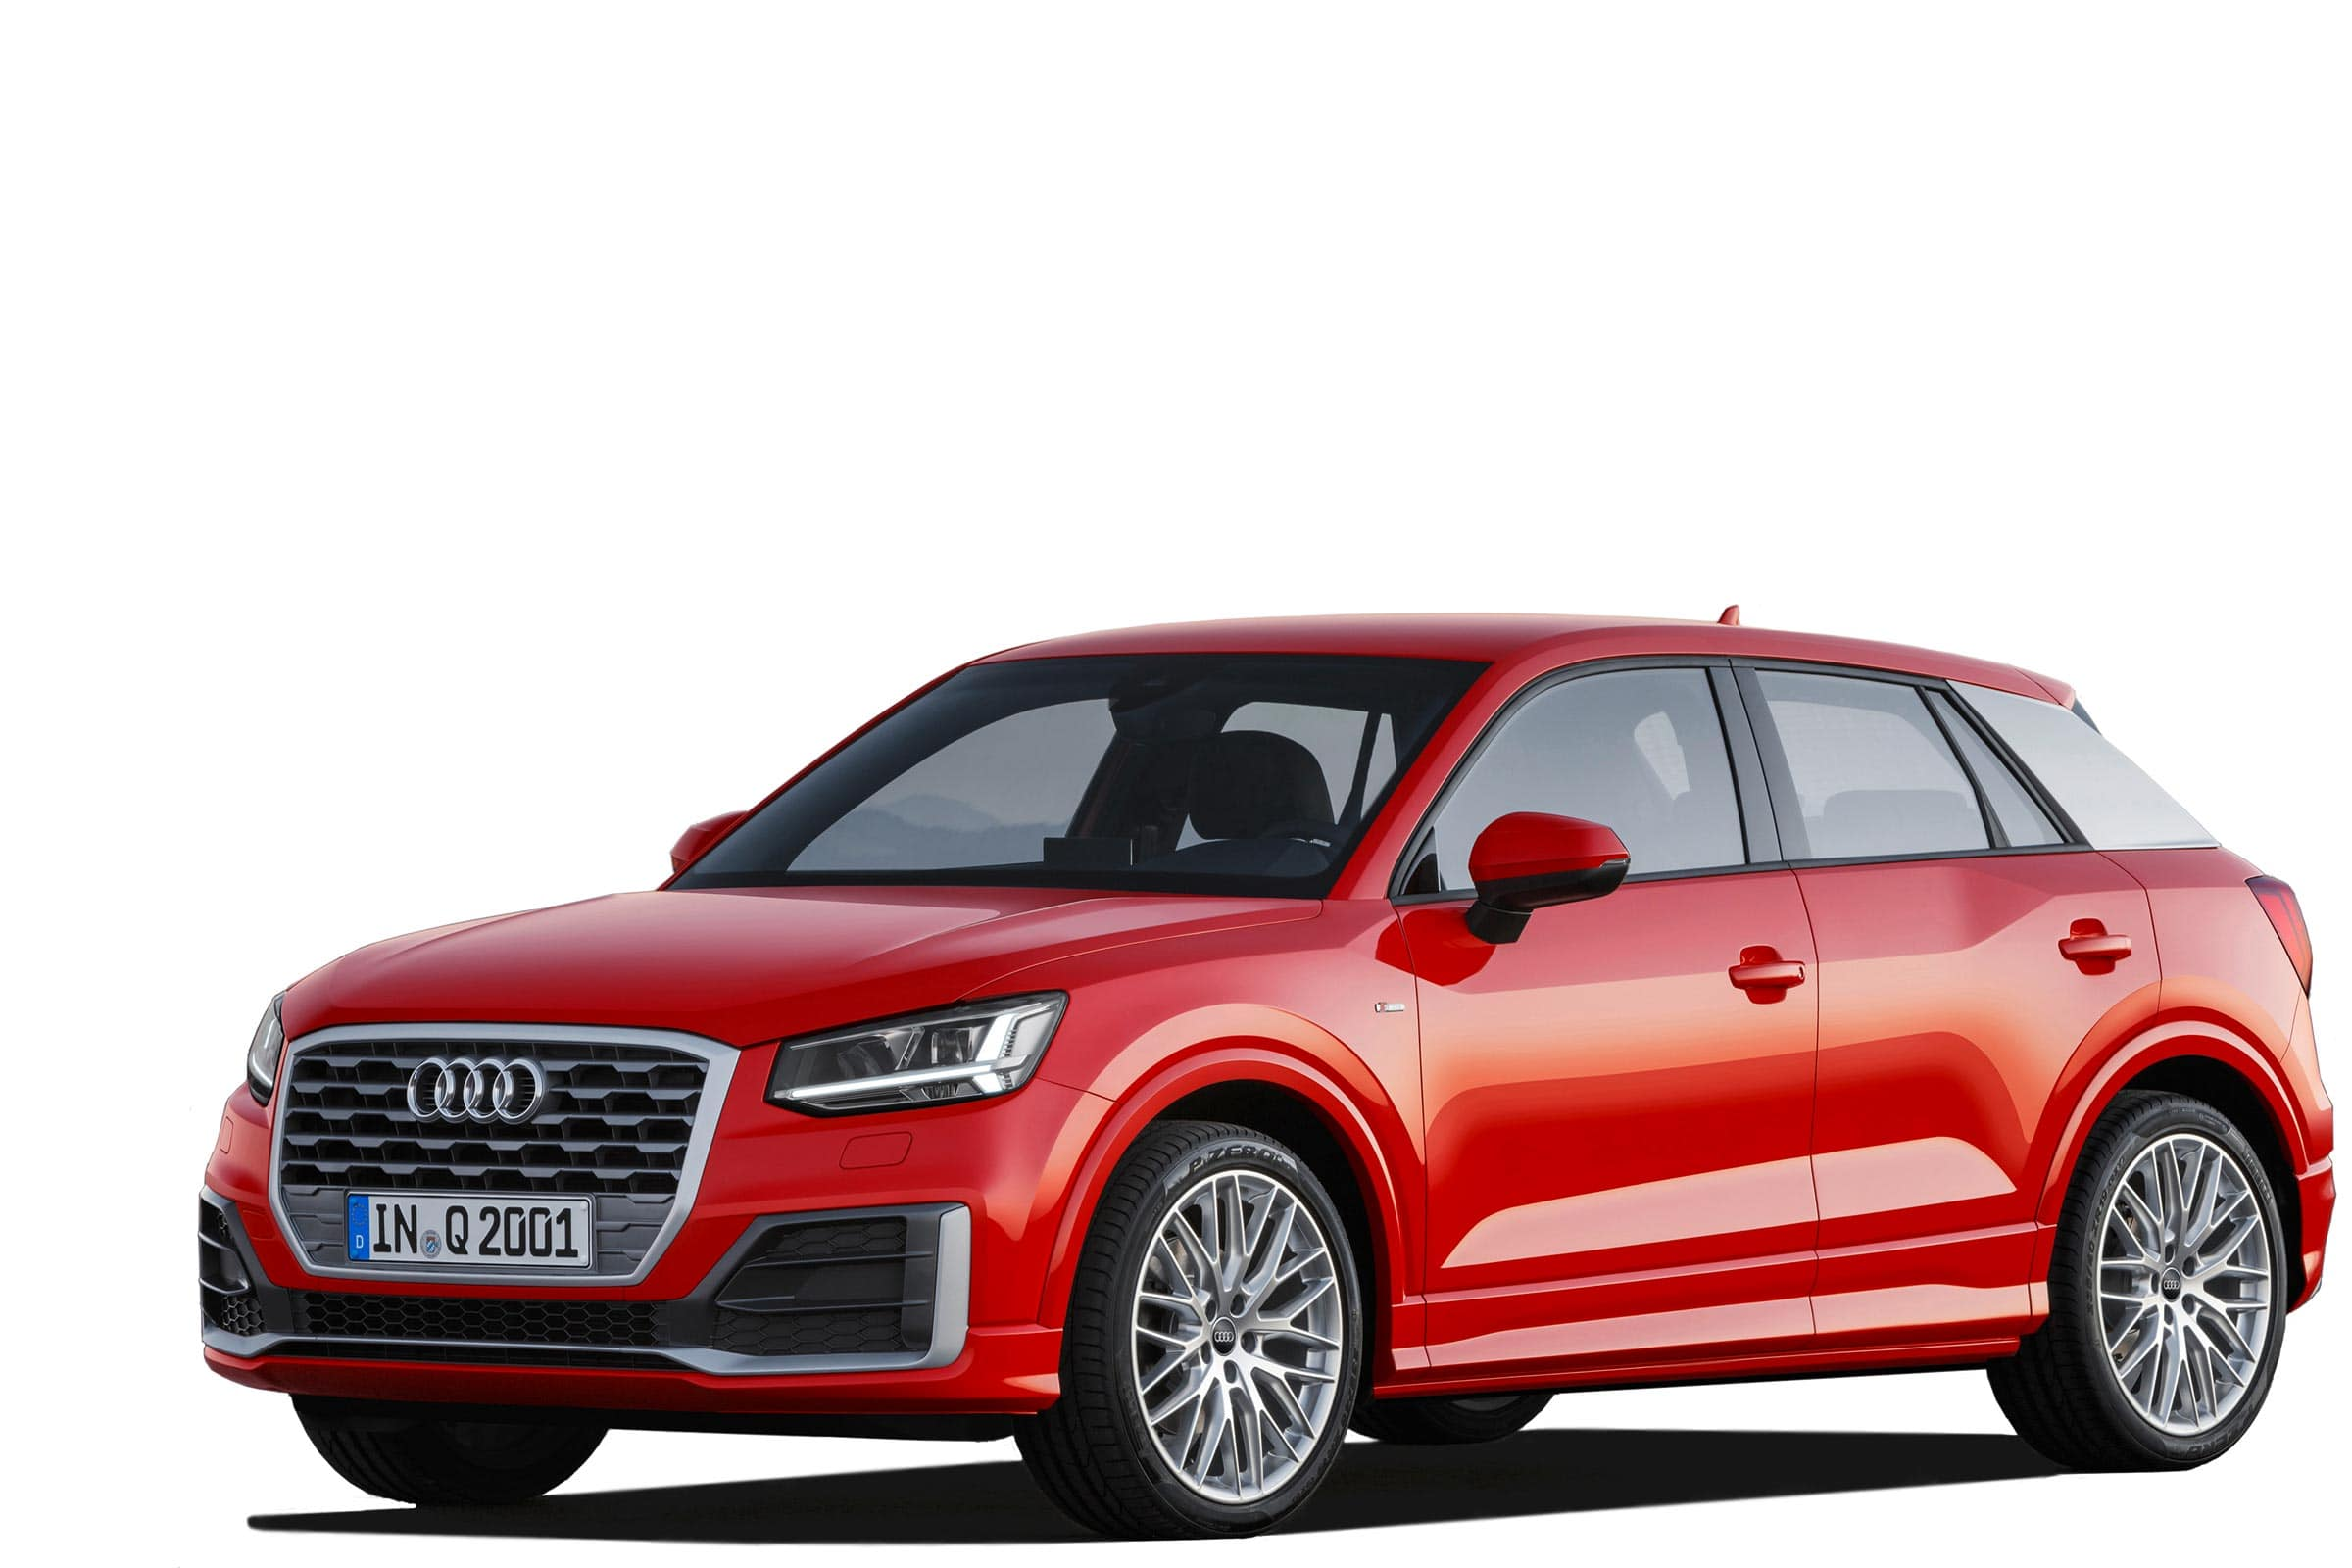 Audi Q2 Widescreen for desktop